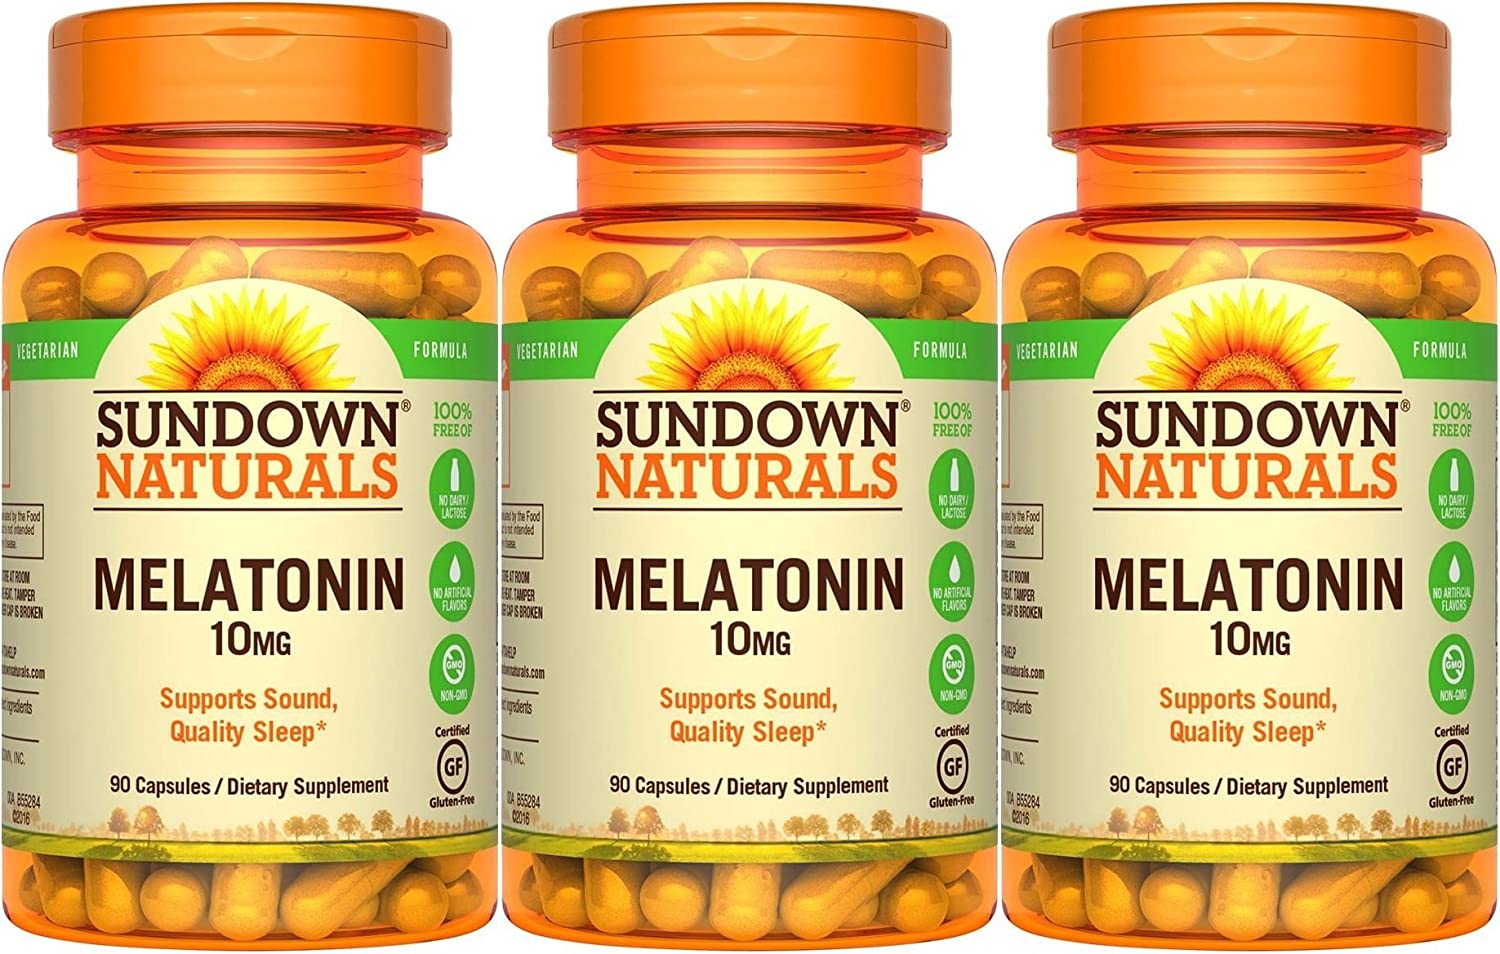 Amazon.com: Sundown Naturals Melatonin, 10mg, 270 Capsules (3 X 90 Count bottles): Health & Personal Care